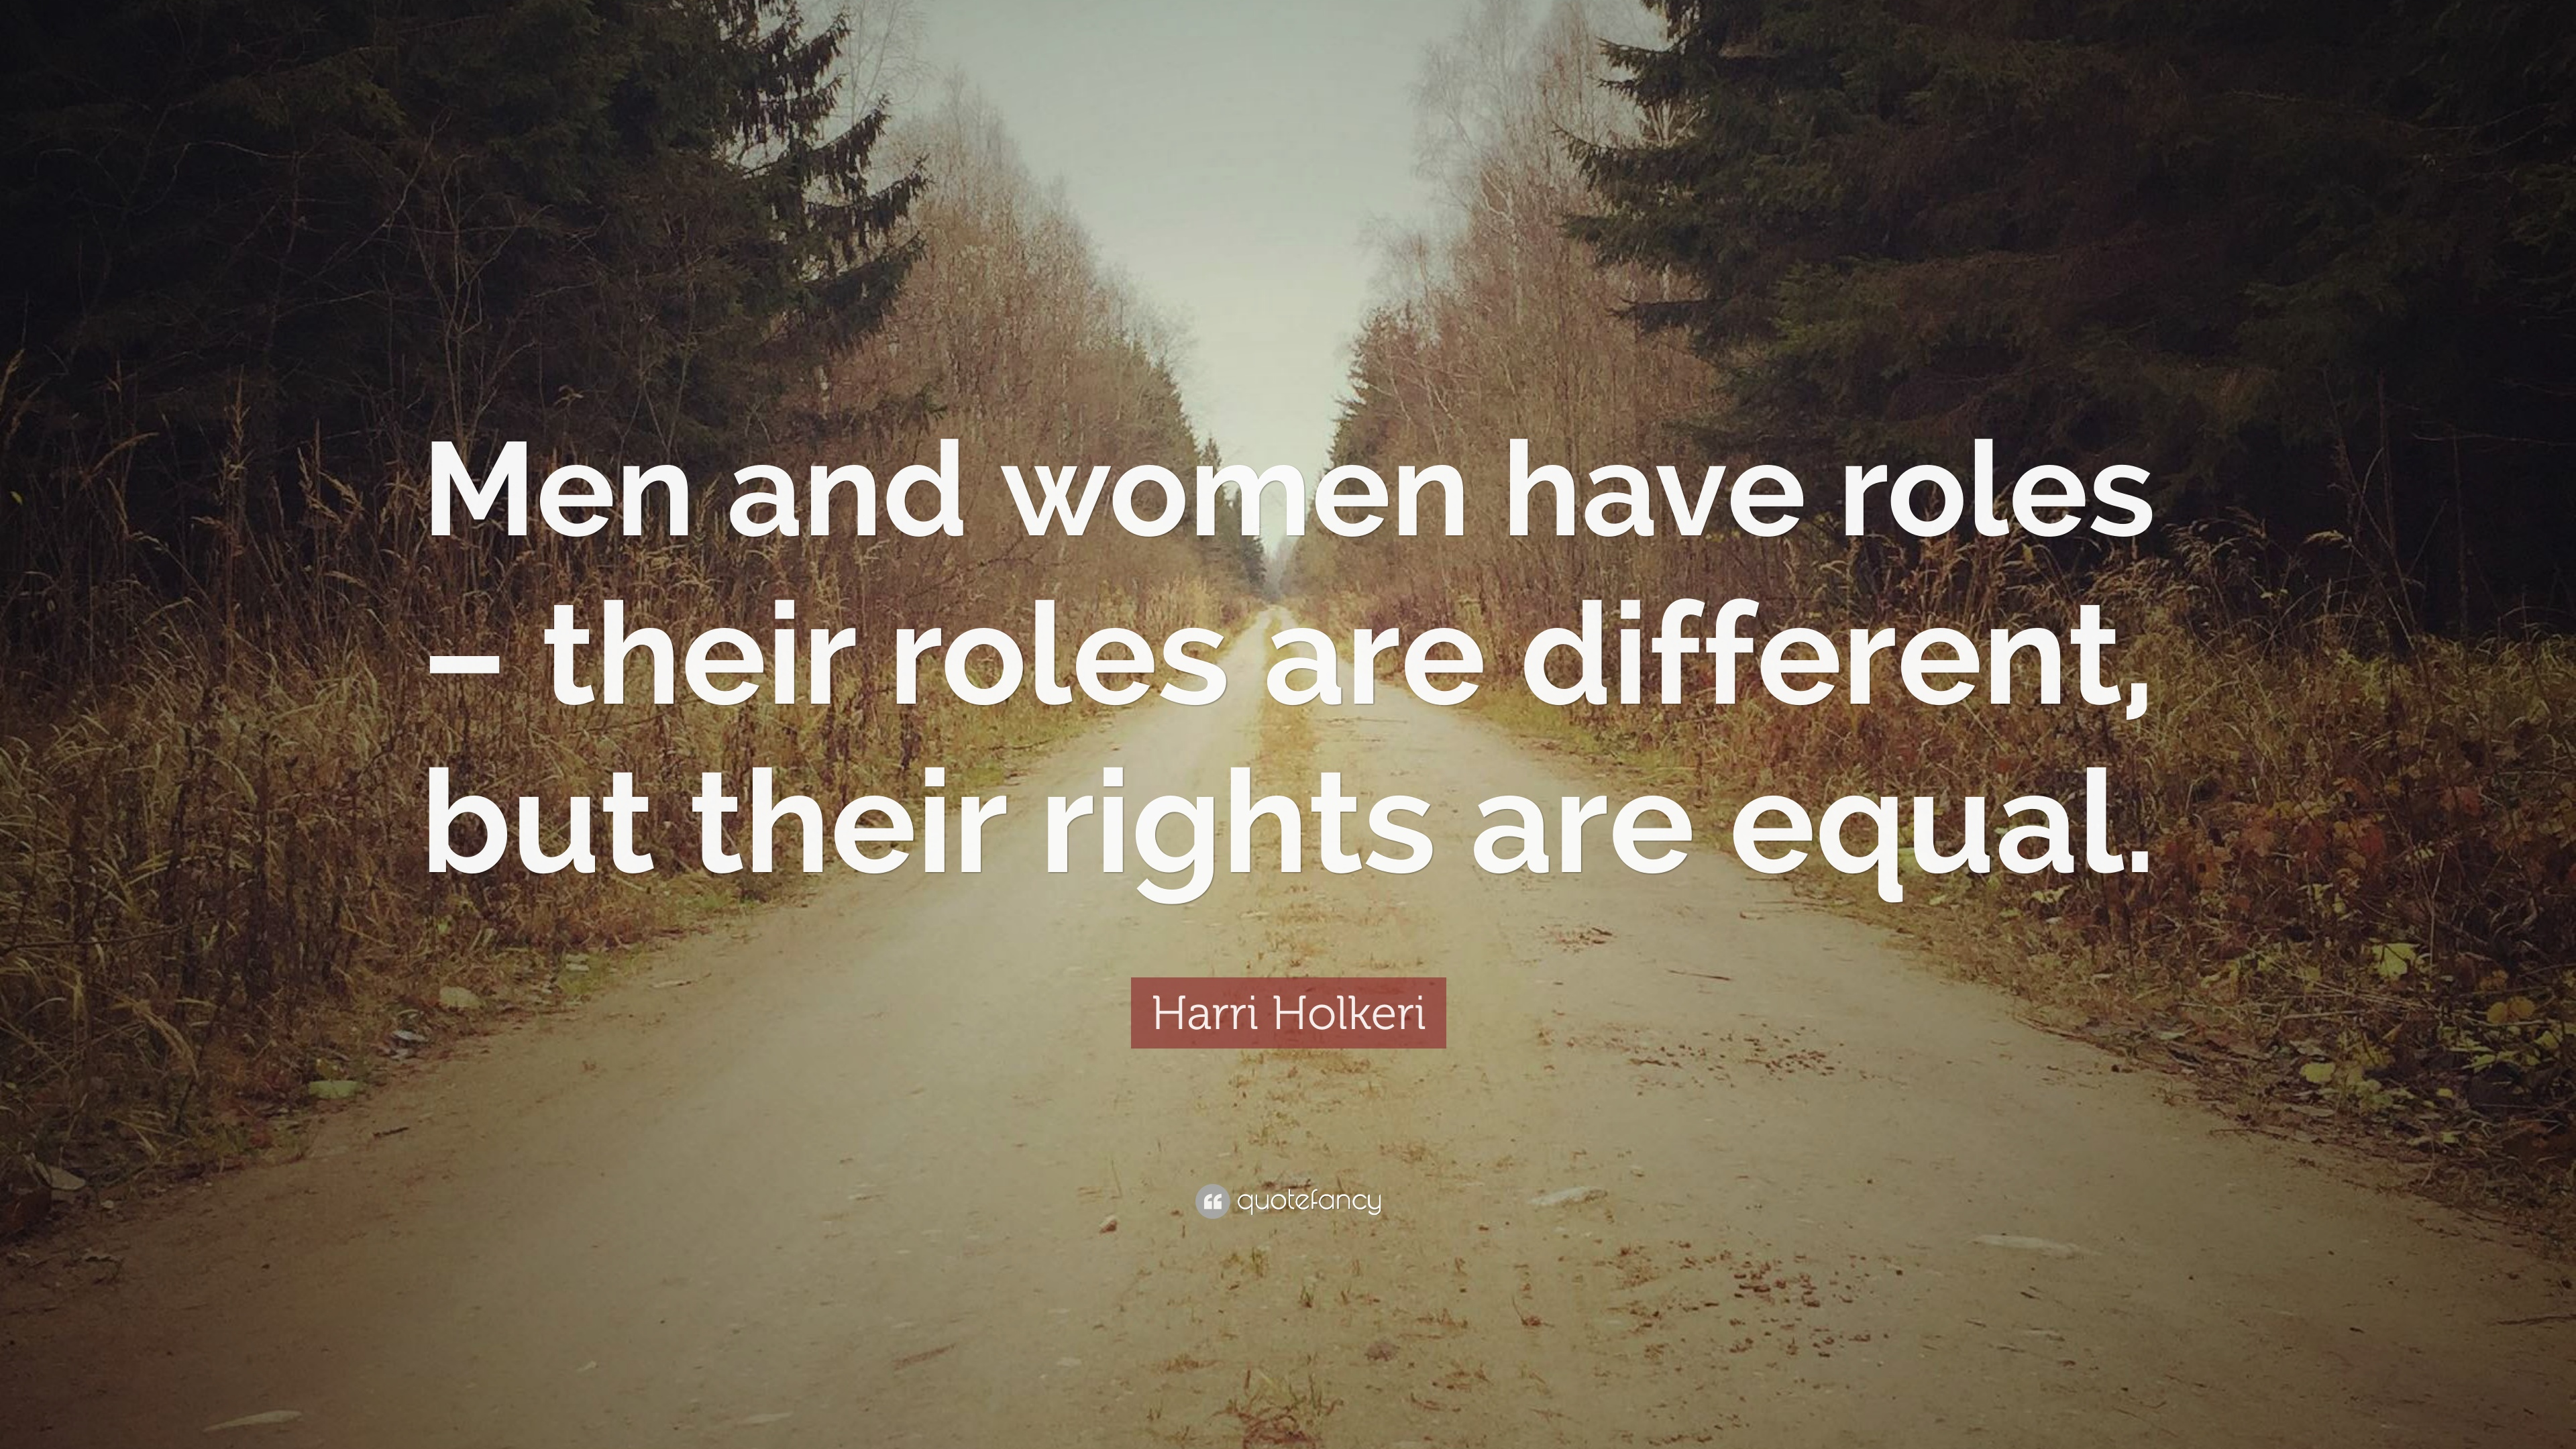 men and women are equal but different